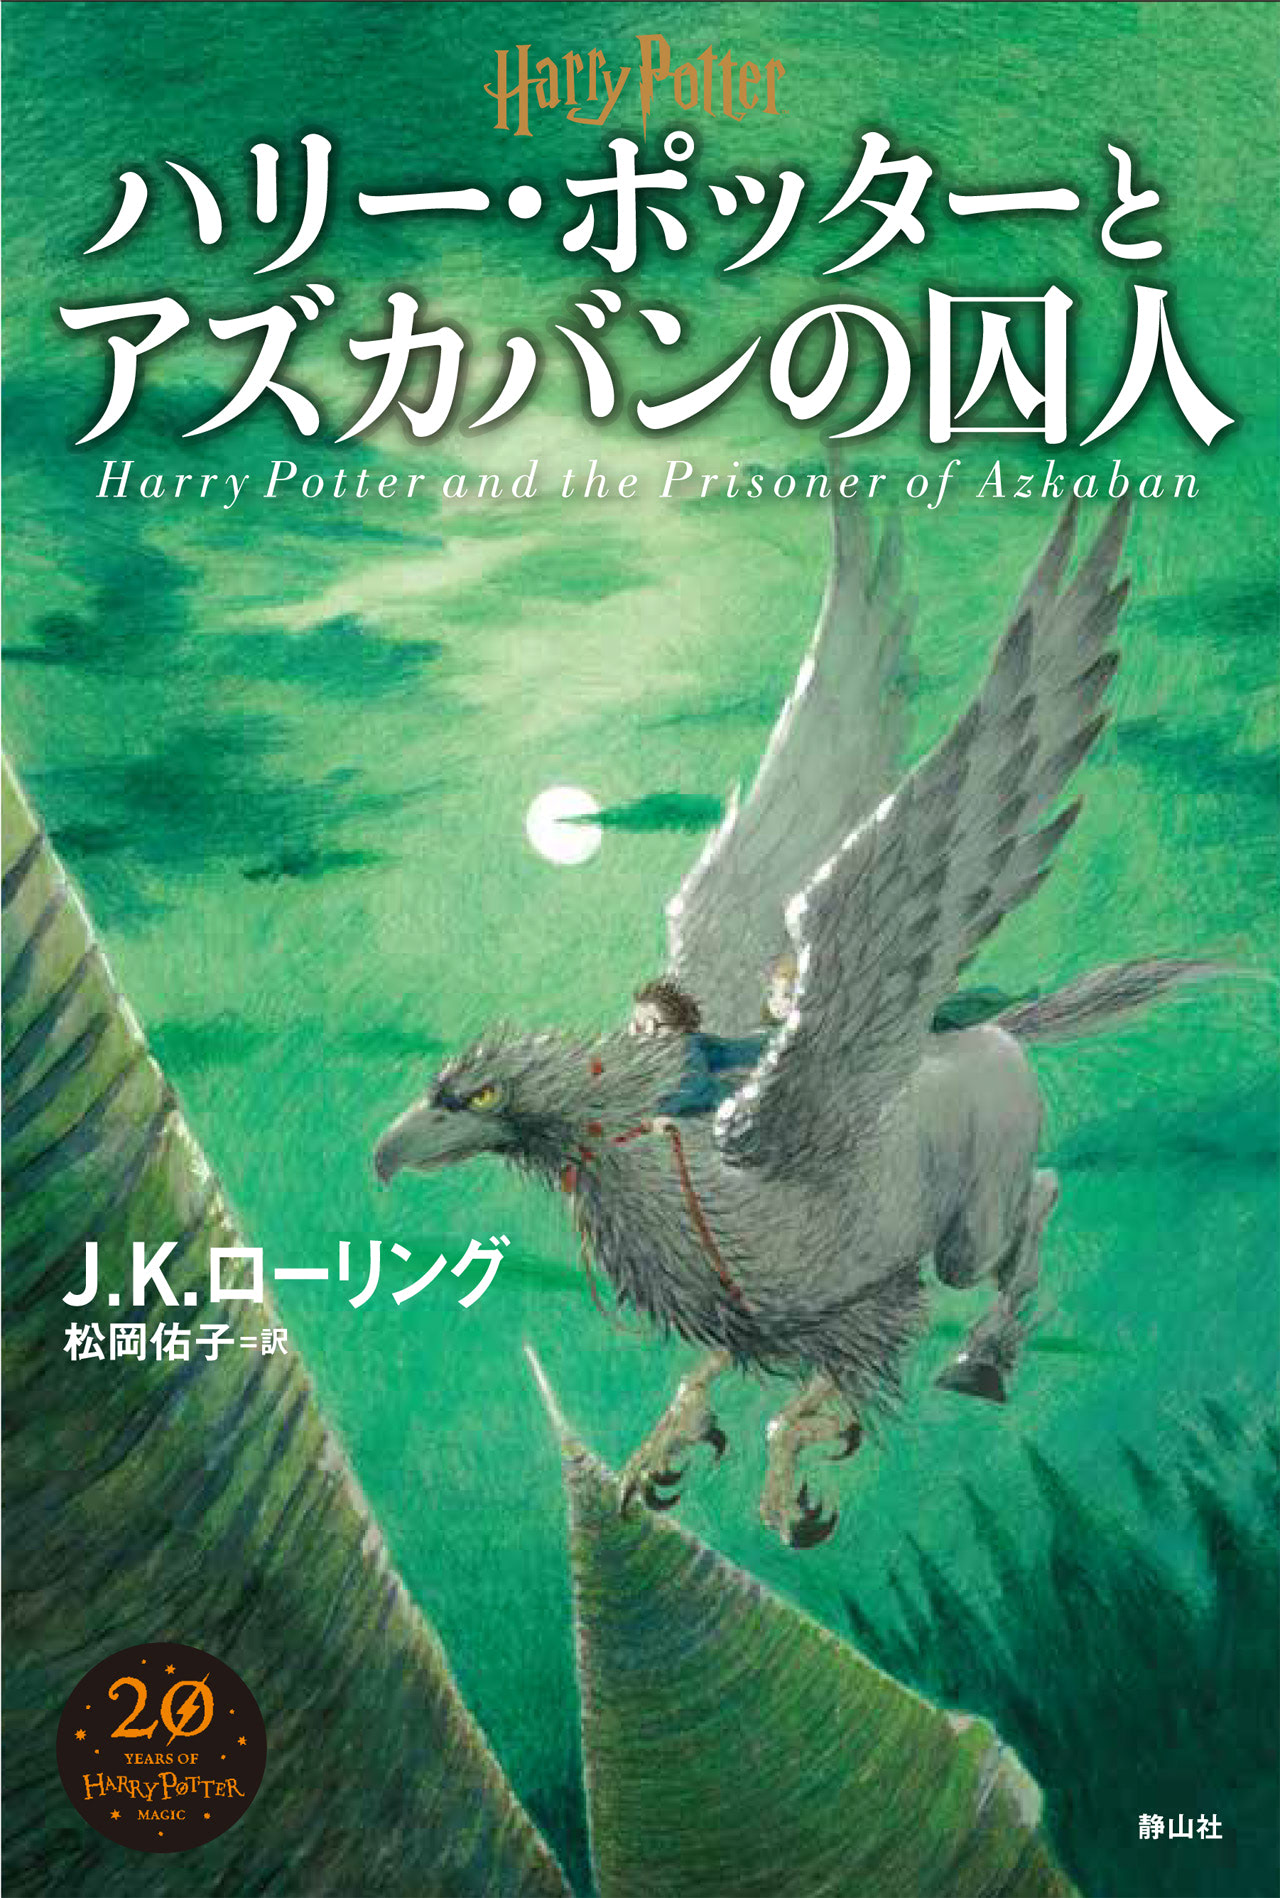 'Prisoner of Azkaban' Japanese 20th anniversary edition